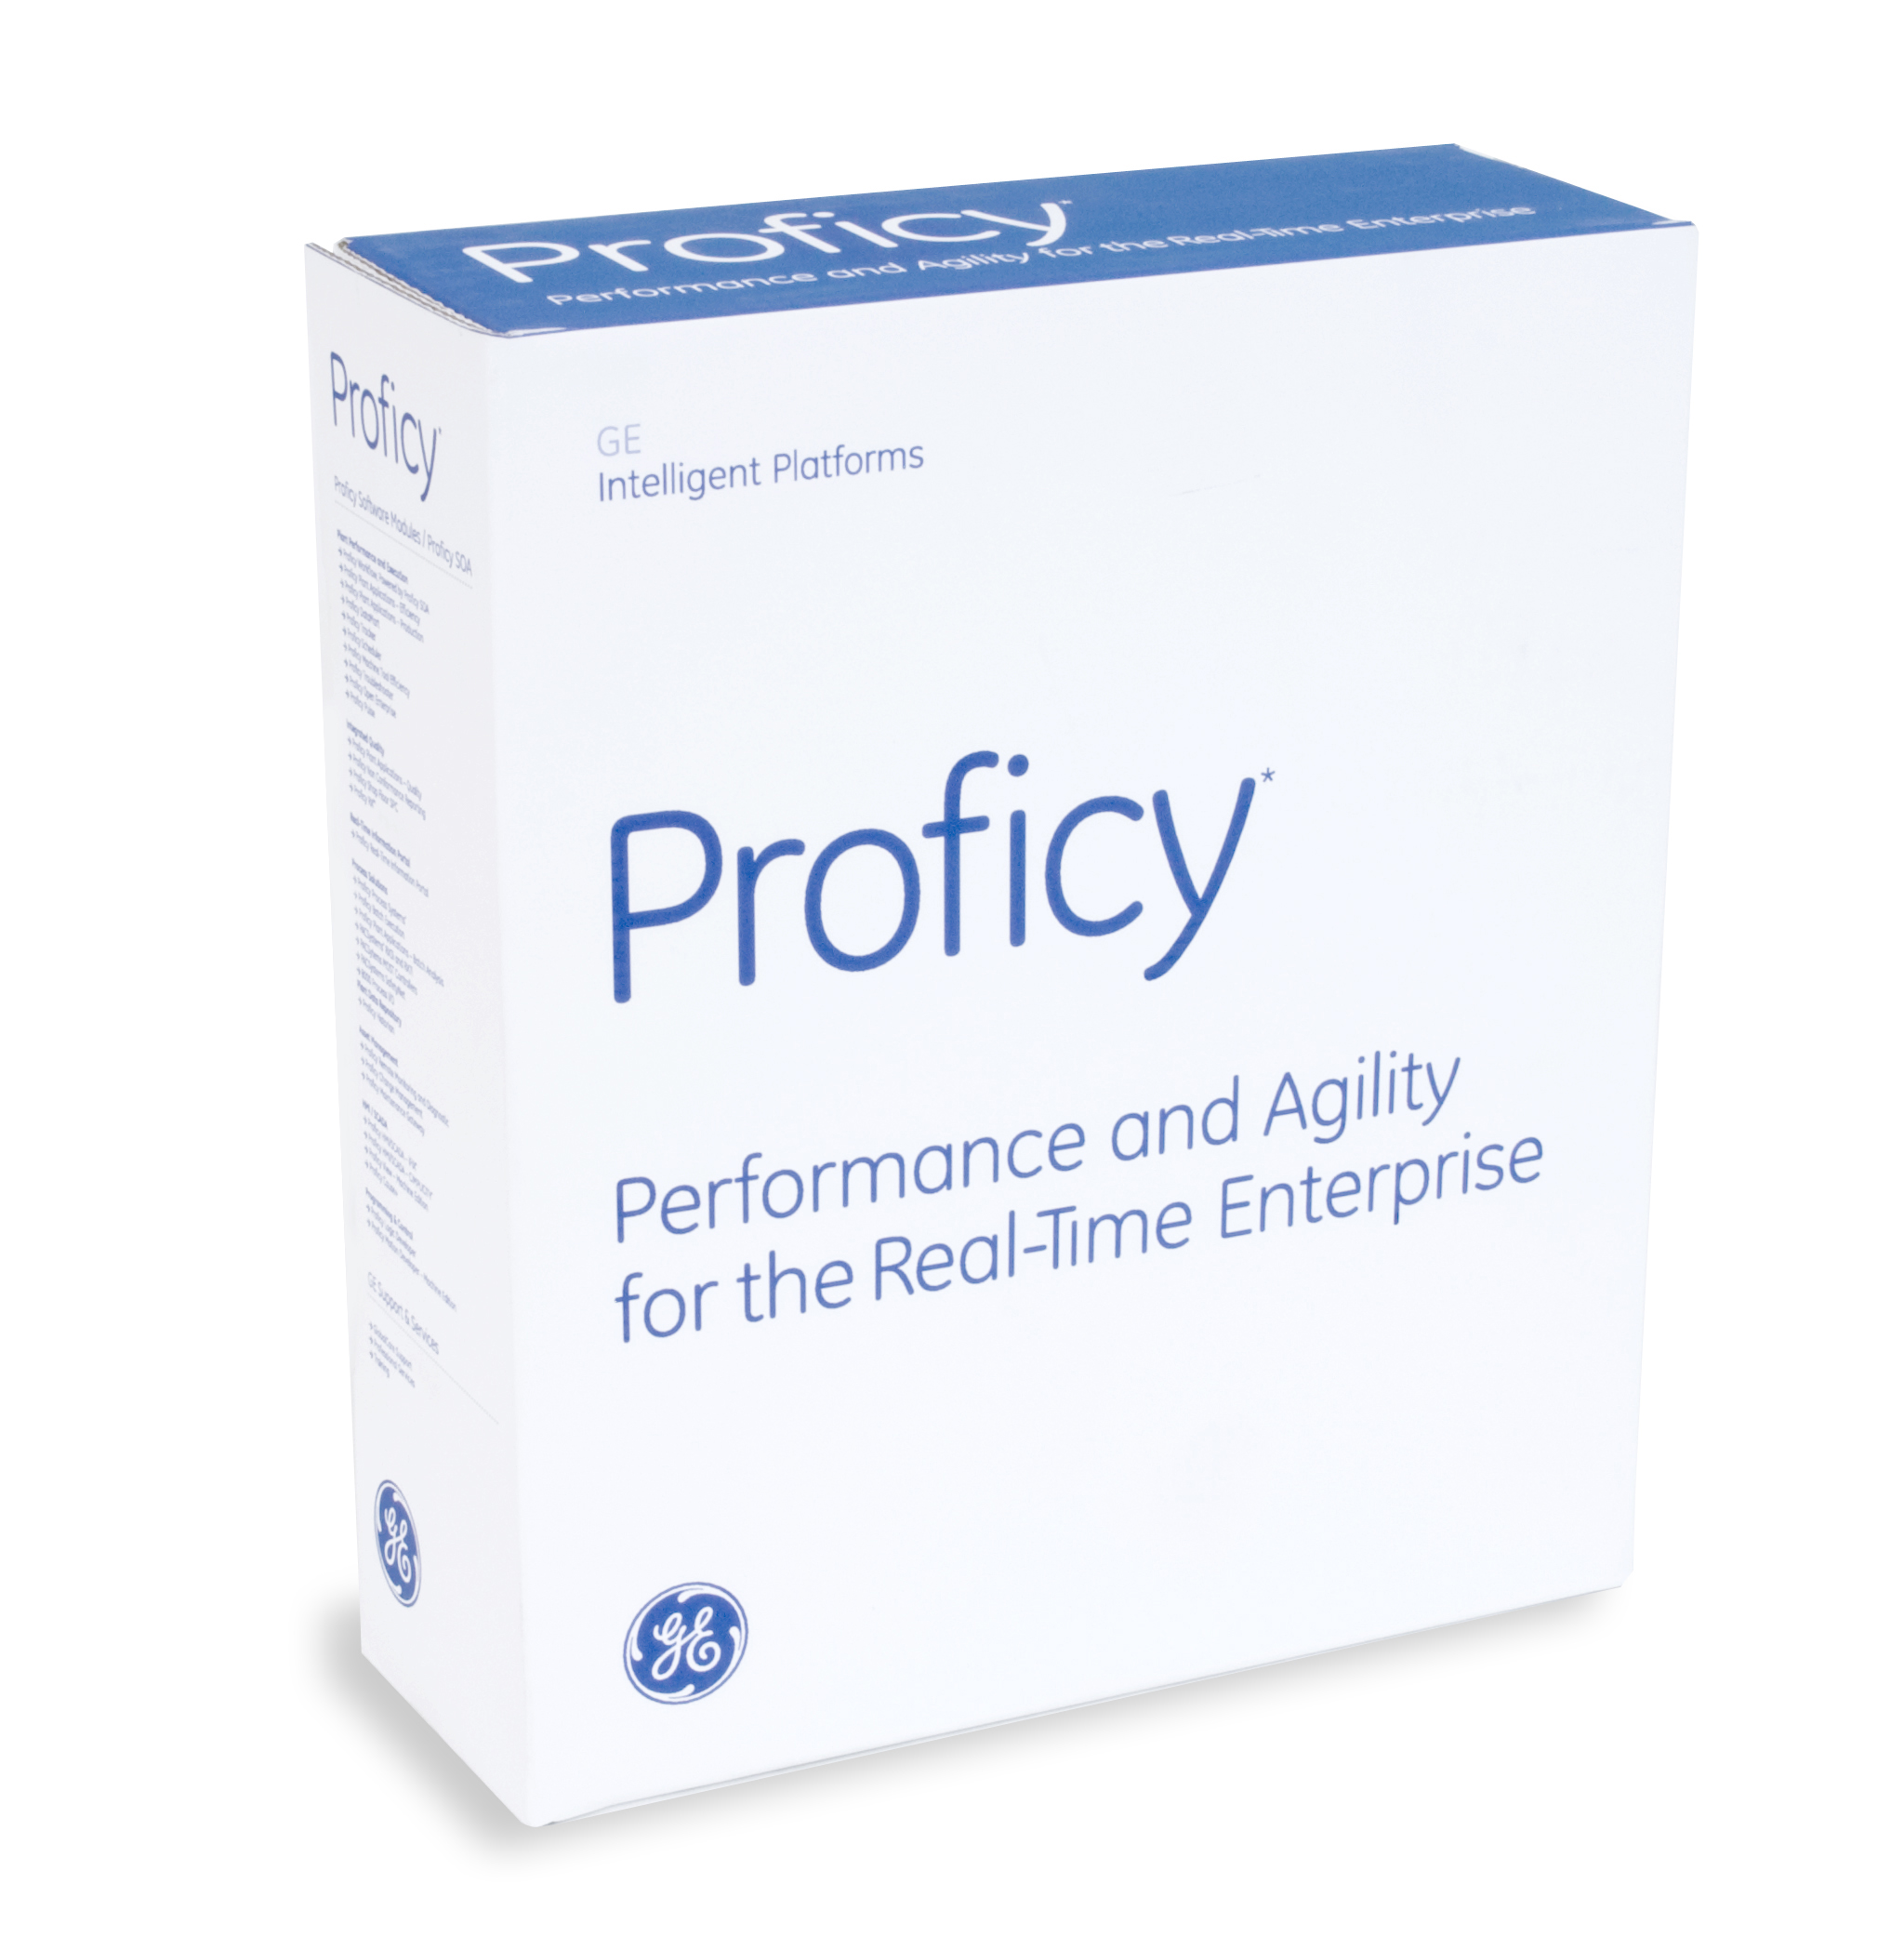 proficy software box